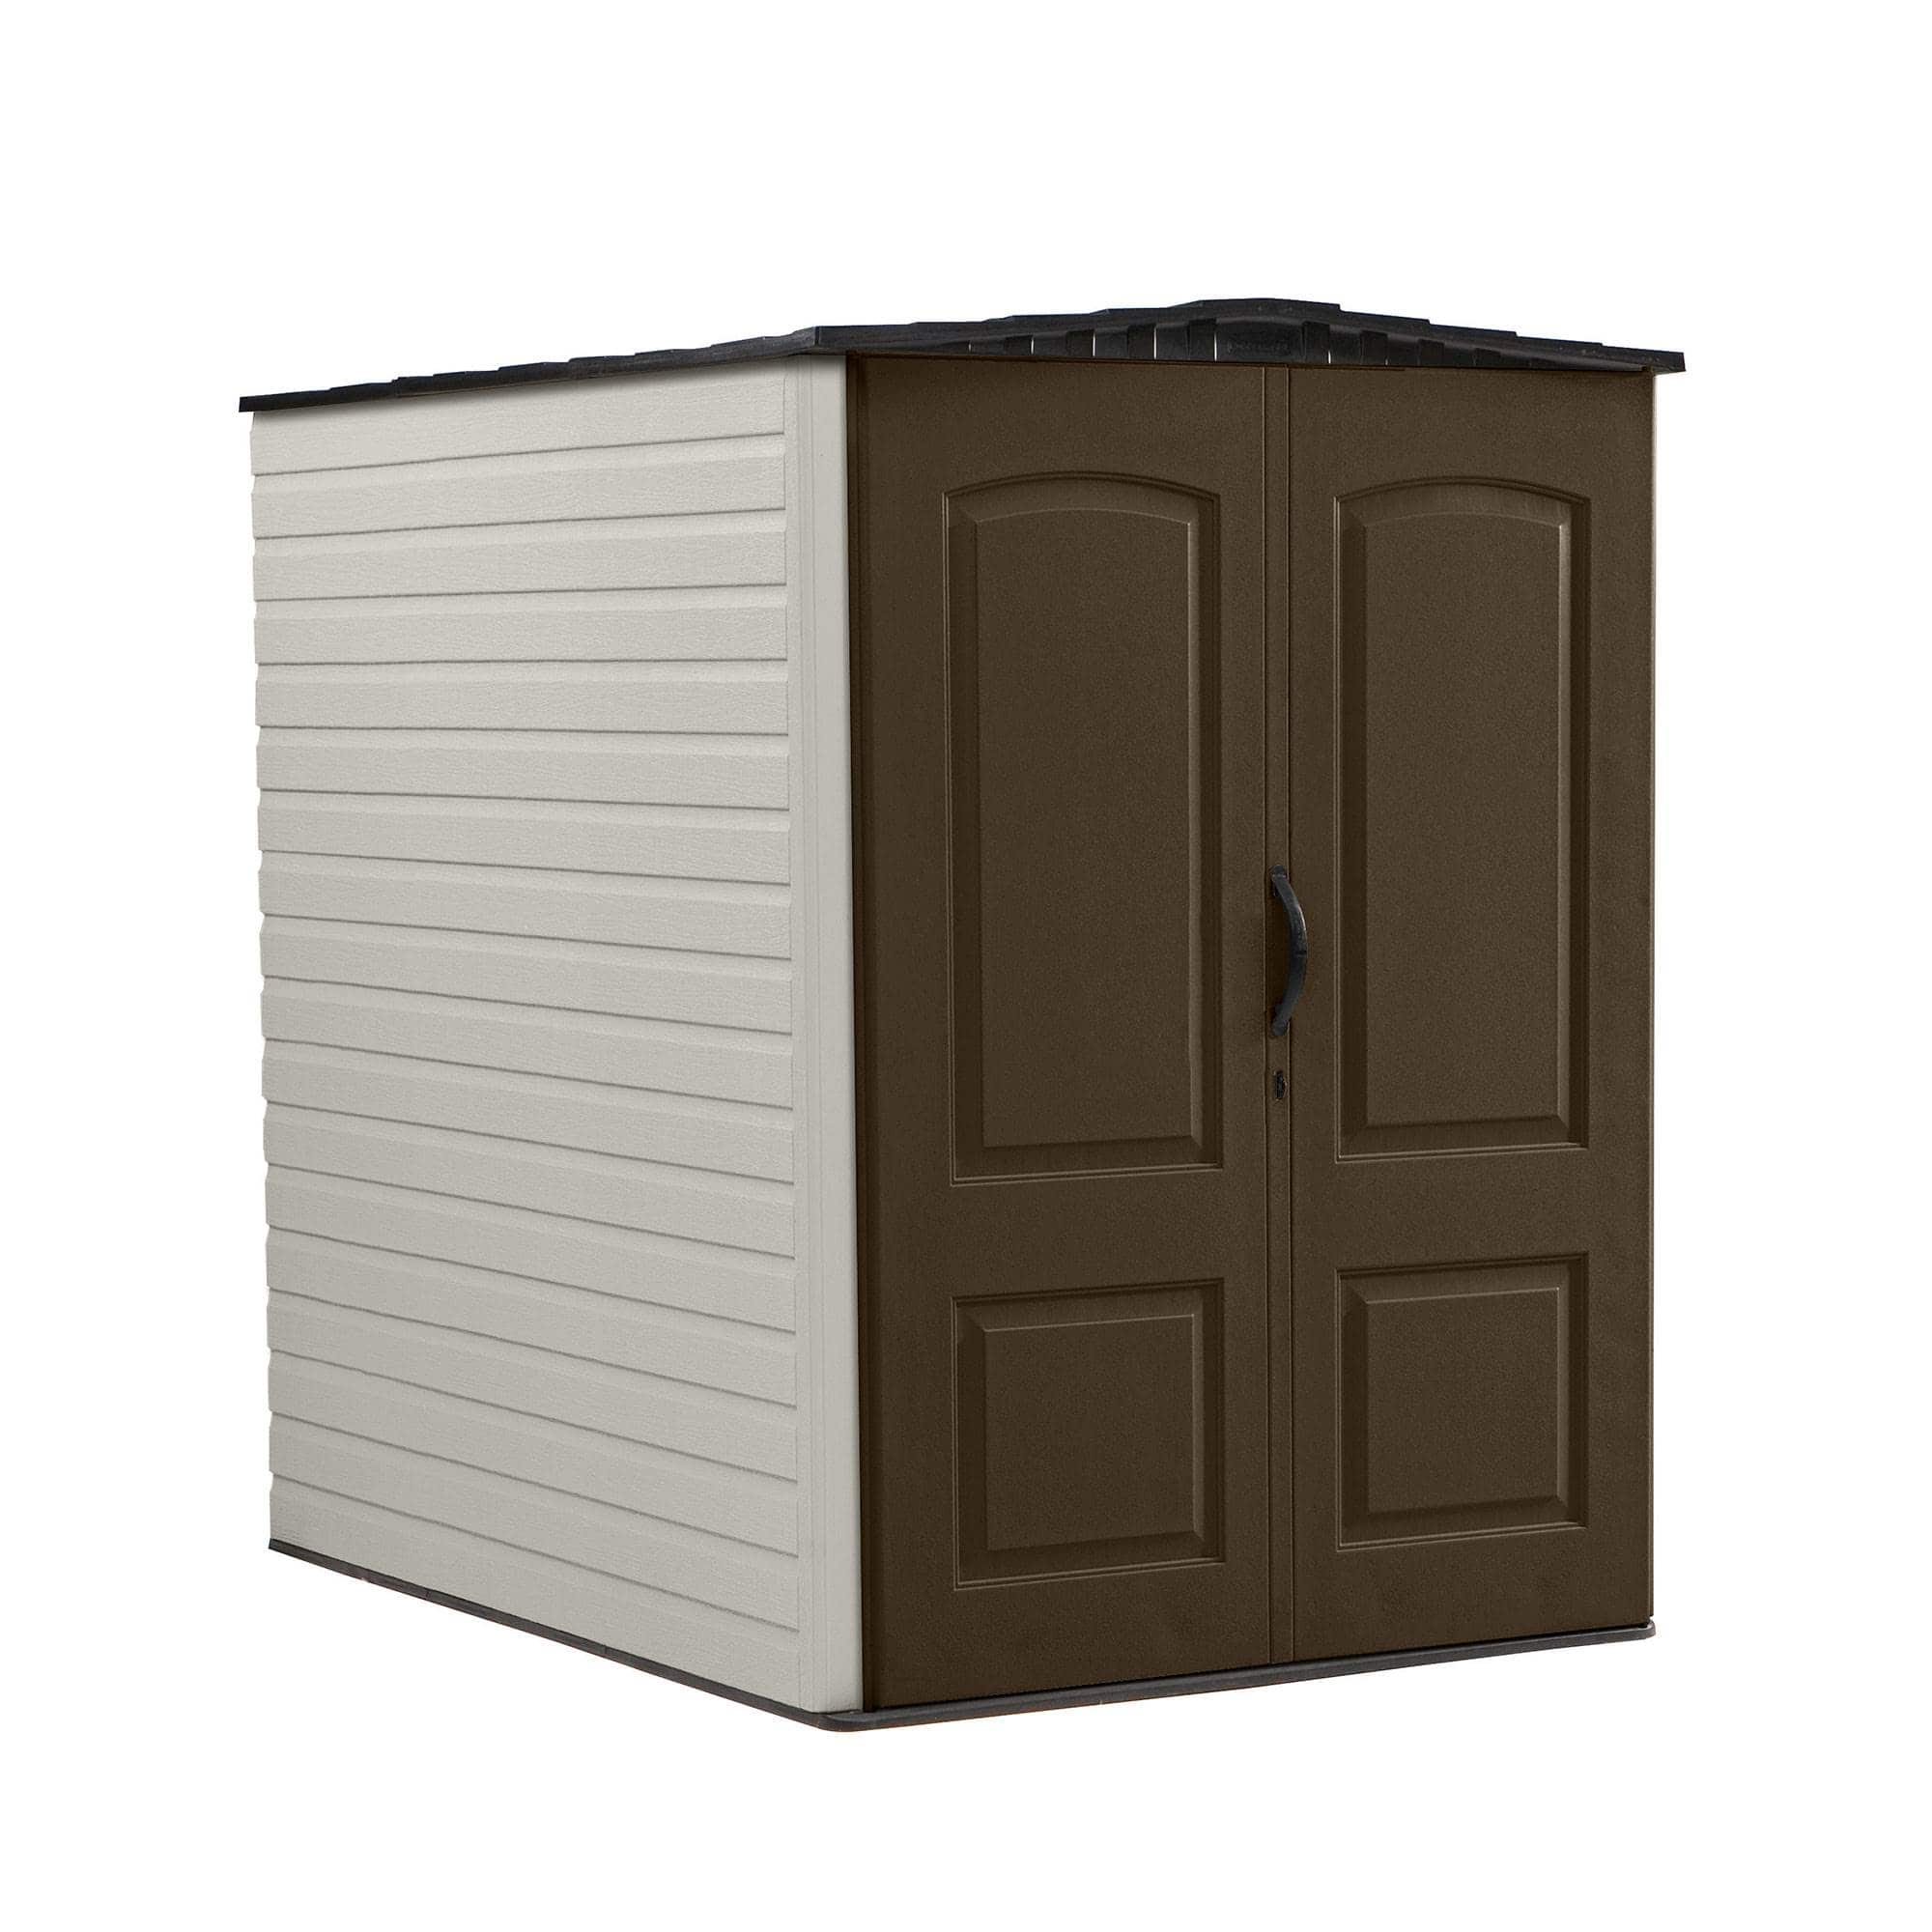 Rubbermaid 5x6 Ft Outdoor Garden Tool Vertical Storage Shed & Shelf Accessories $479.99